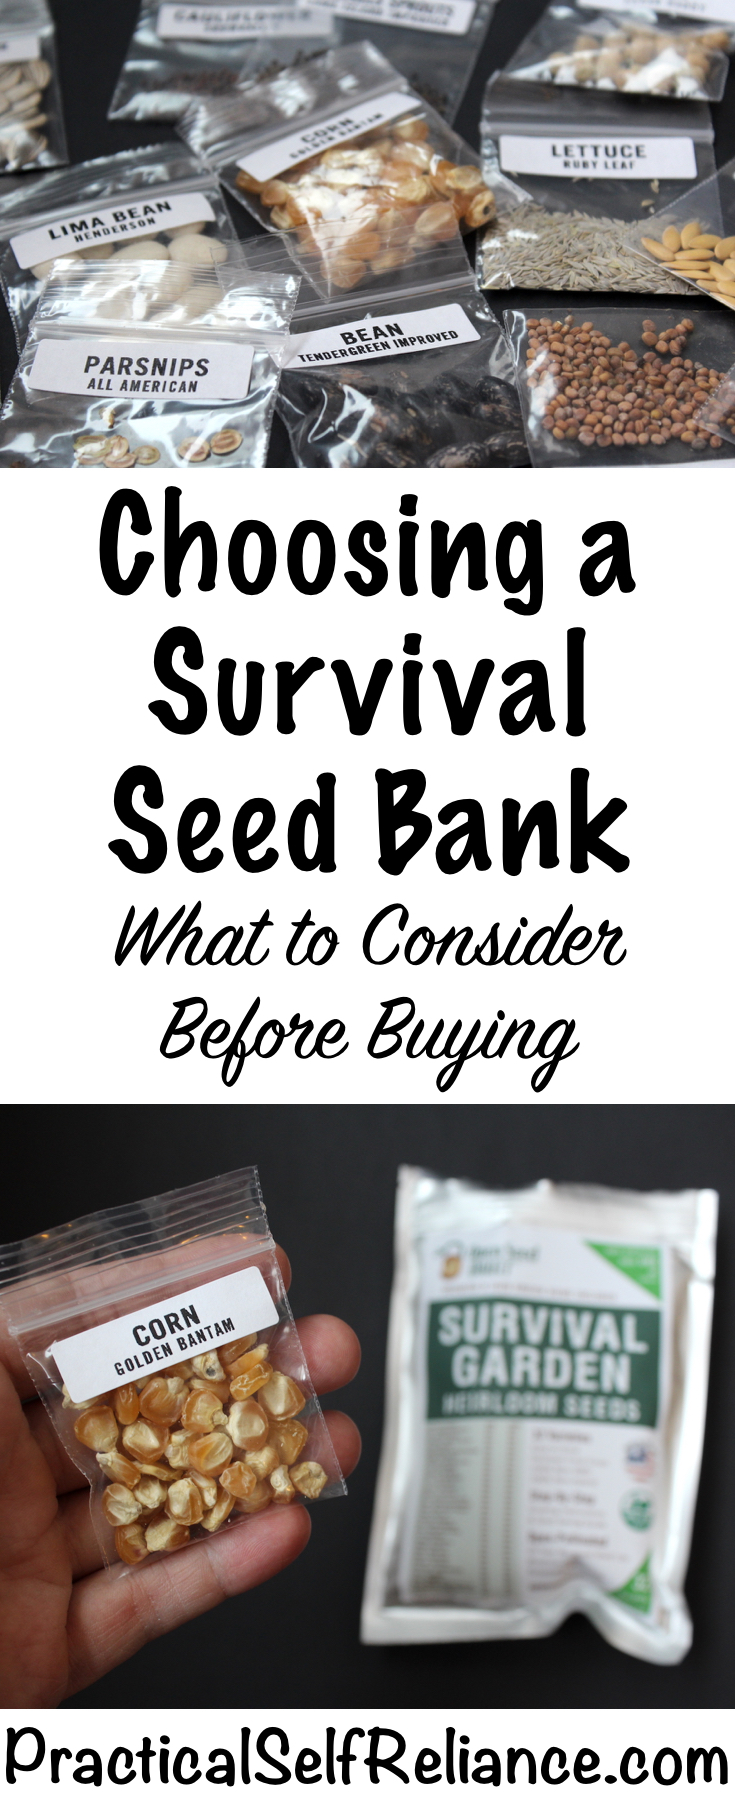 Choosing a Survival Seed Bank